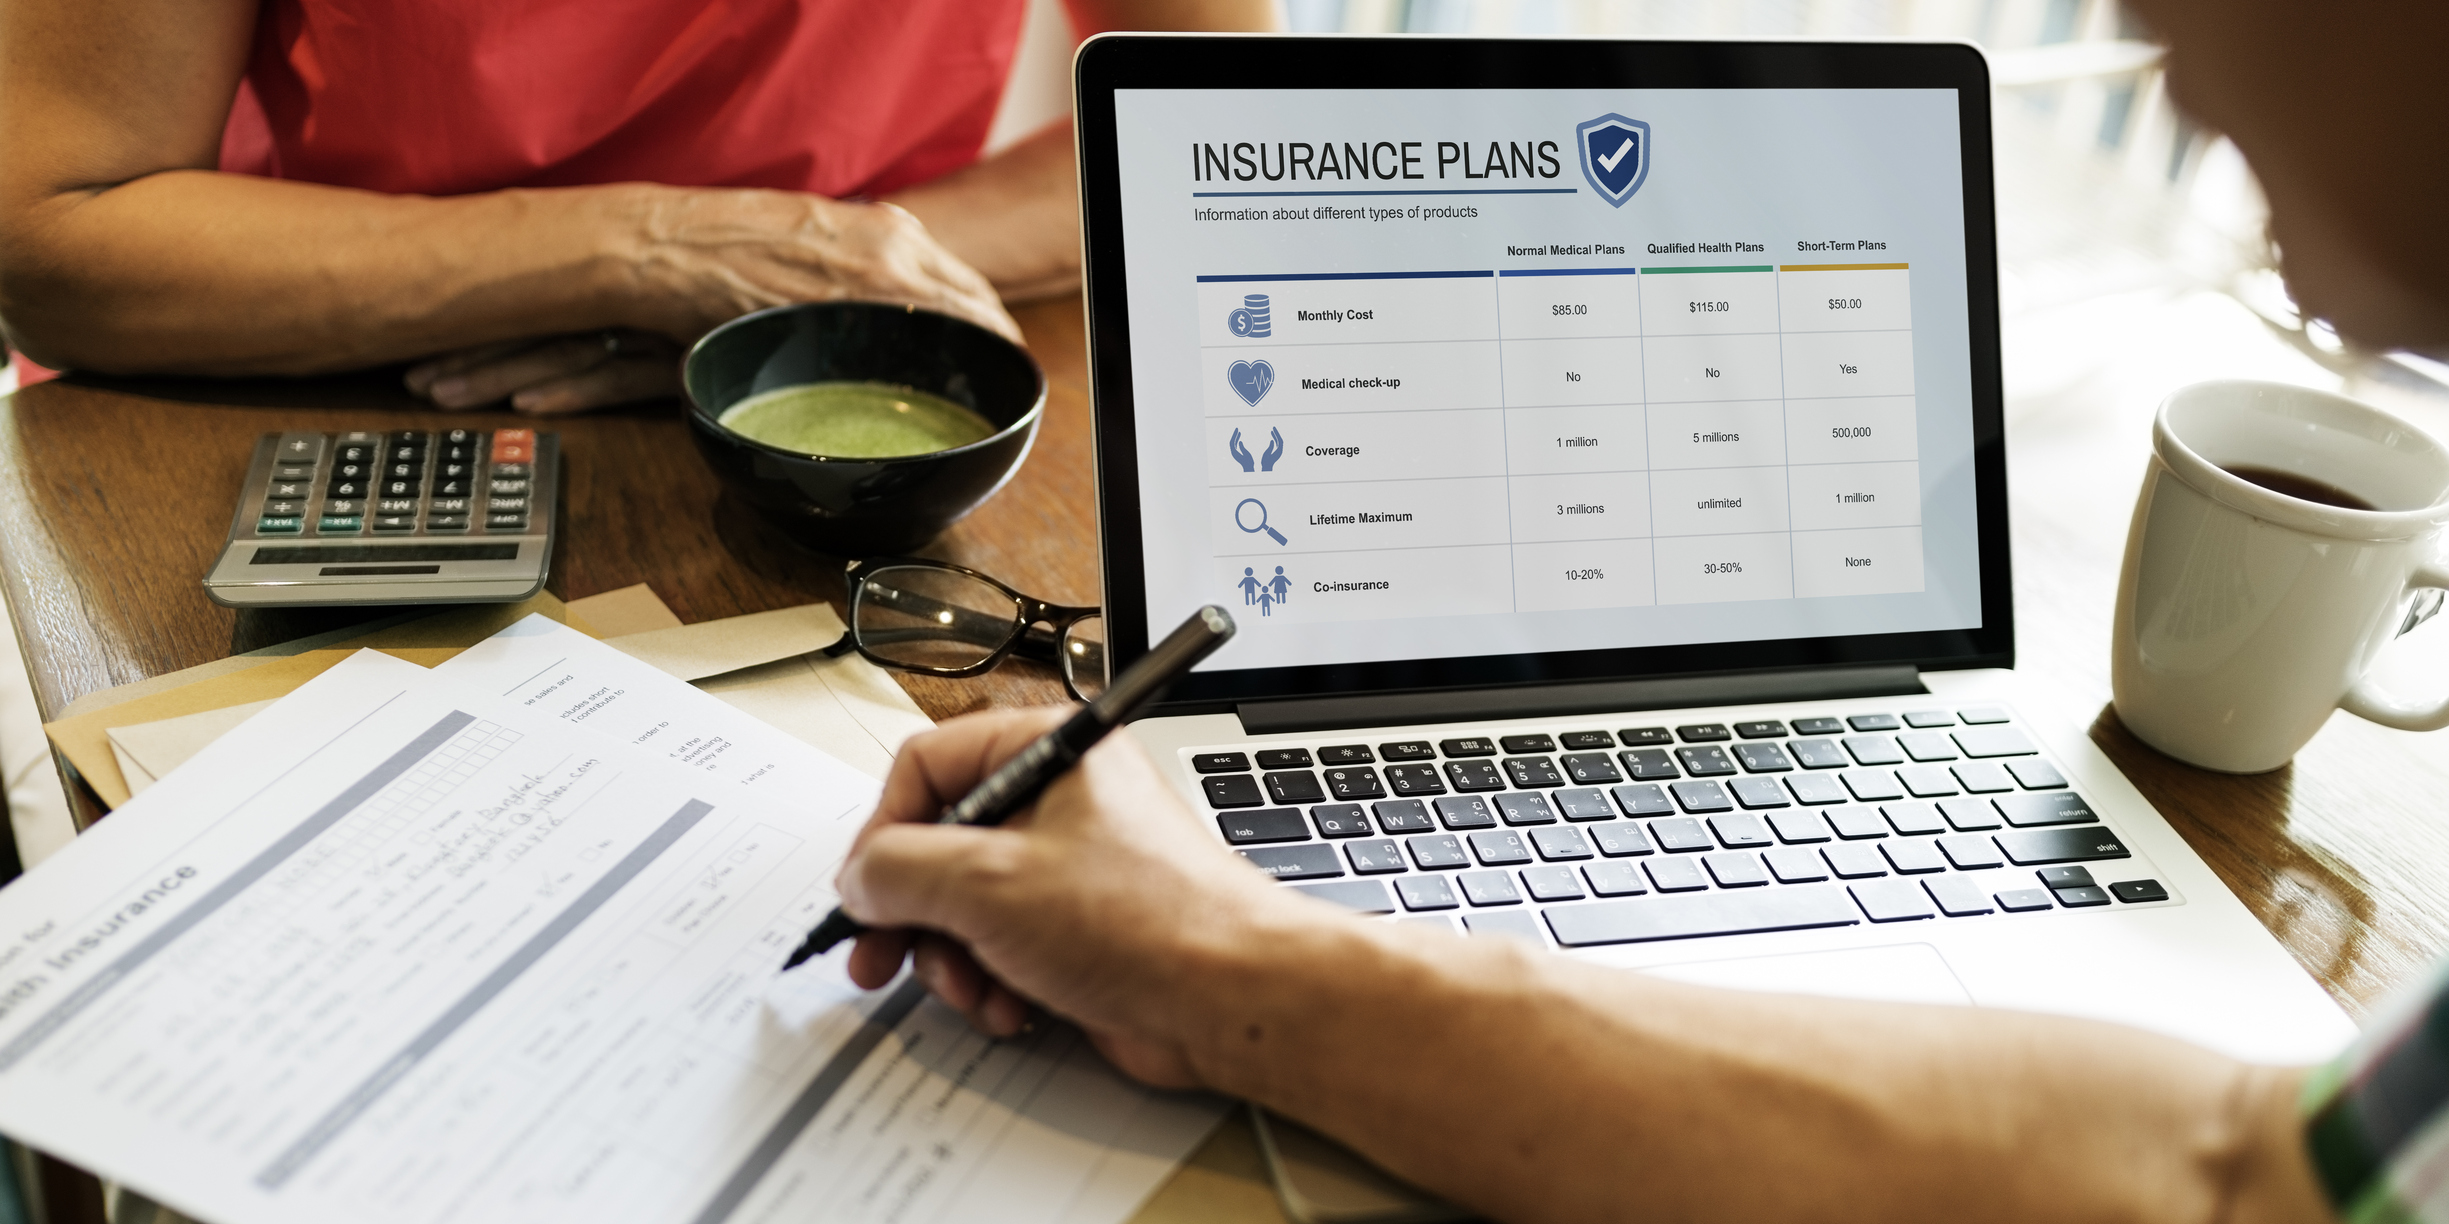 Do You Have An Insurance Plan?